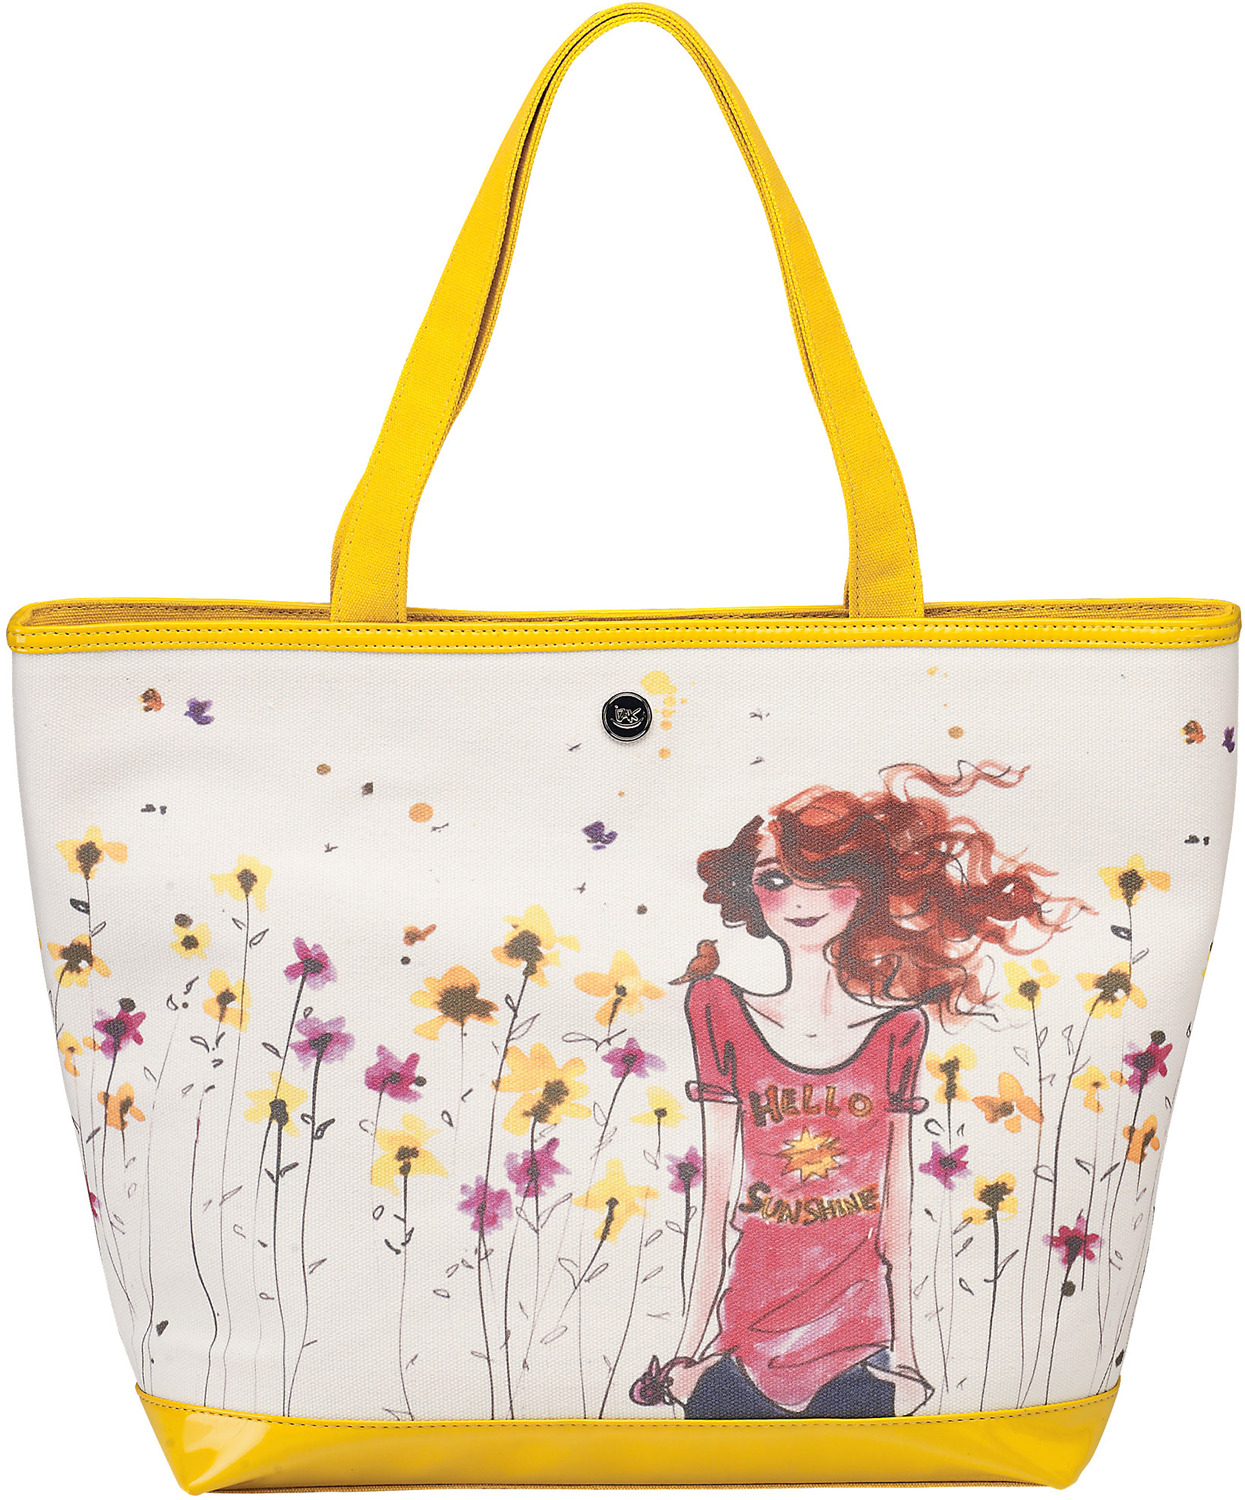 "Hello Sunshine by IZAK - Hello Sunshine - 16"" x 12"" Canvas Tote Bag"